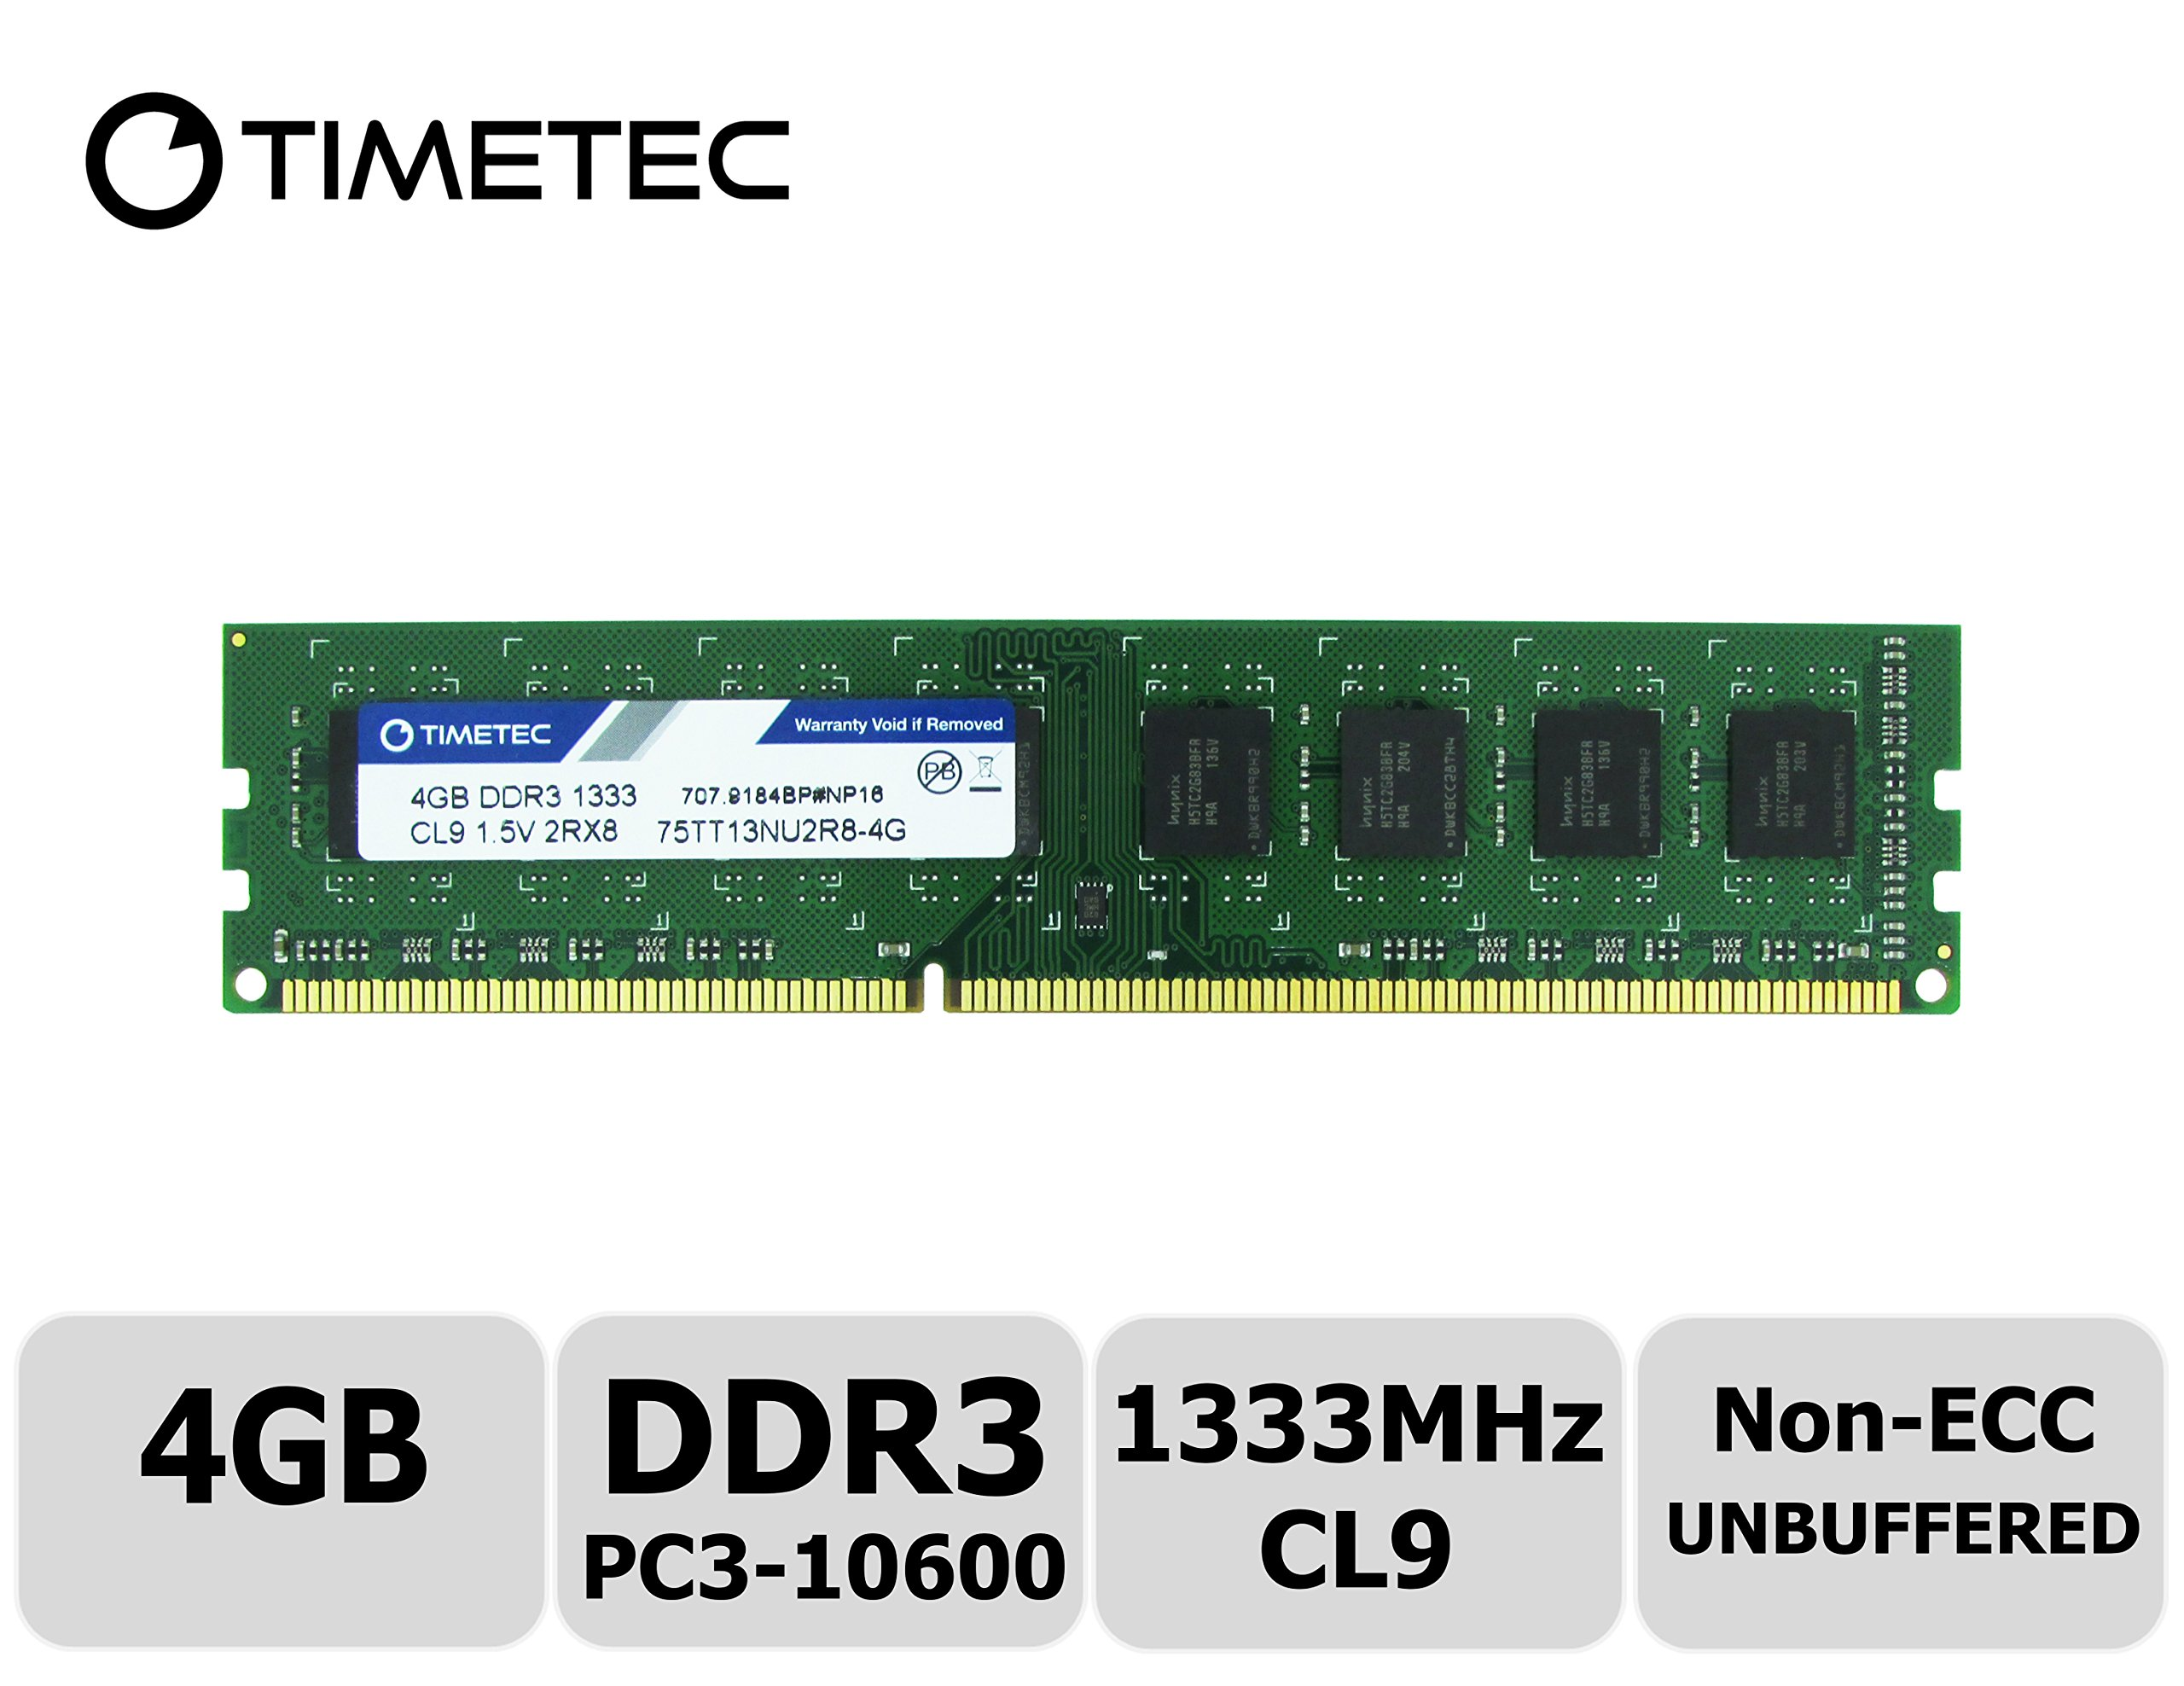 Timetec Hynix IC 4GB DDR3 1333MHz PC3-10600 Non ECC Unbuffered 1.5V CL9 2R8 Dual Rank 240 Pin UDIMM Desktop PC Computer Memory Ram Module Upgrade (Low Density 4GB)